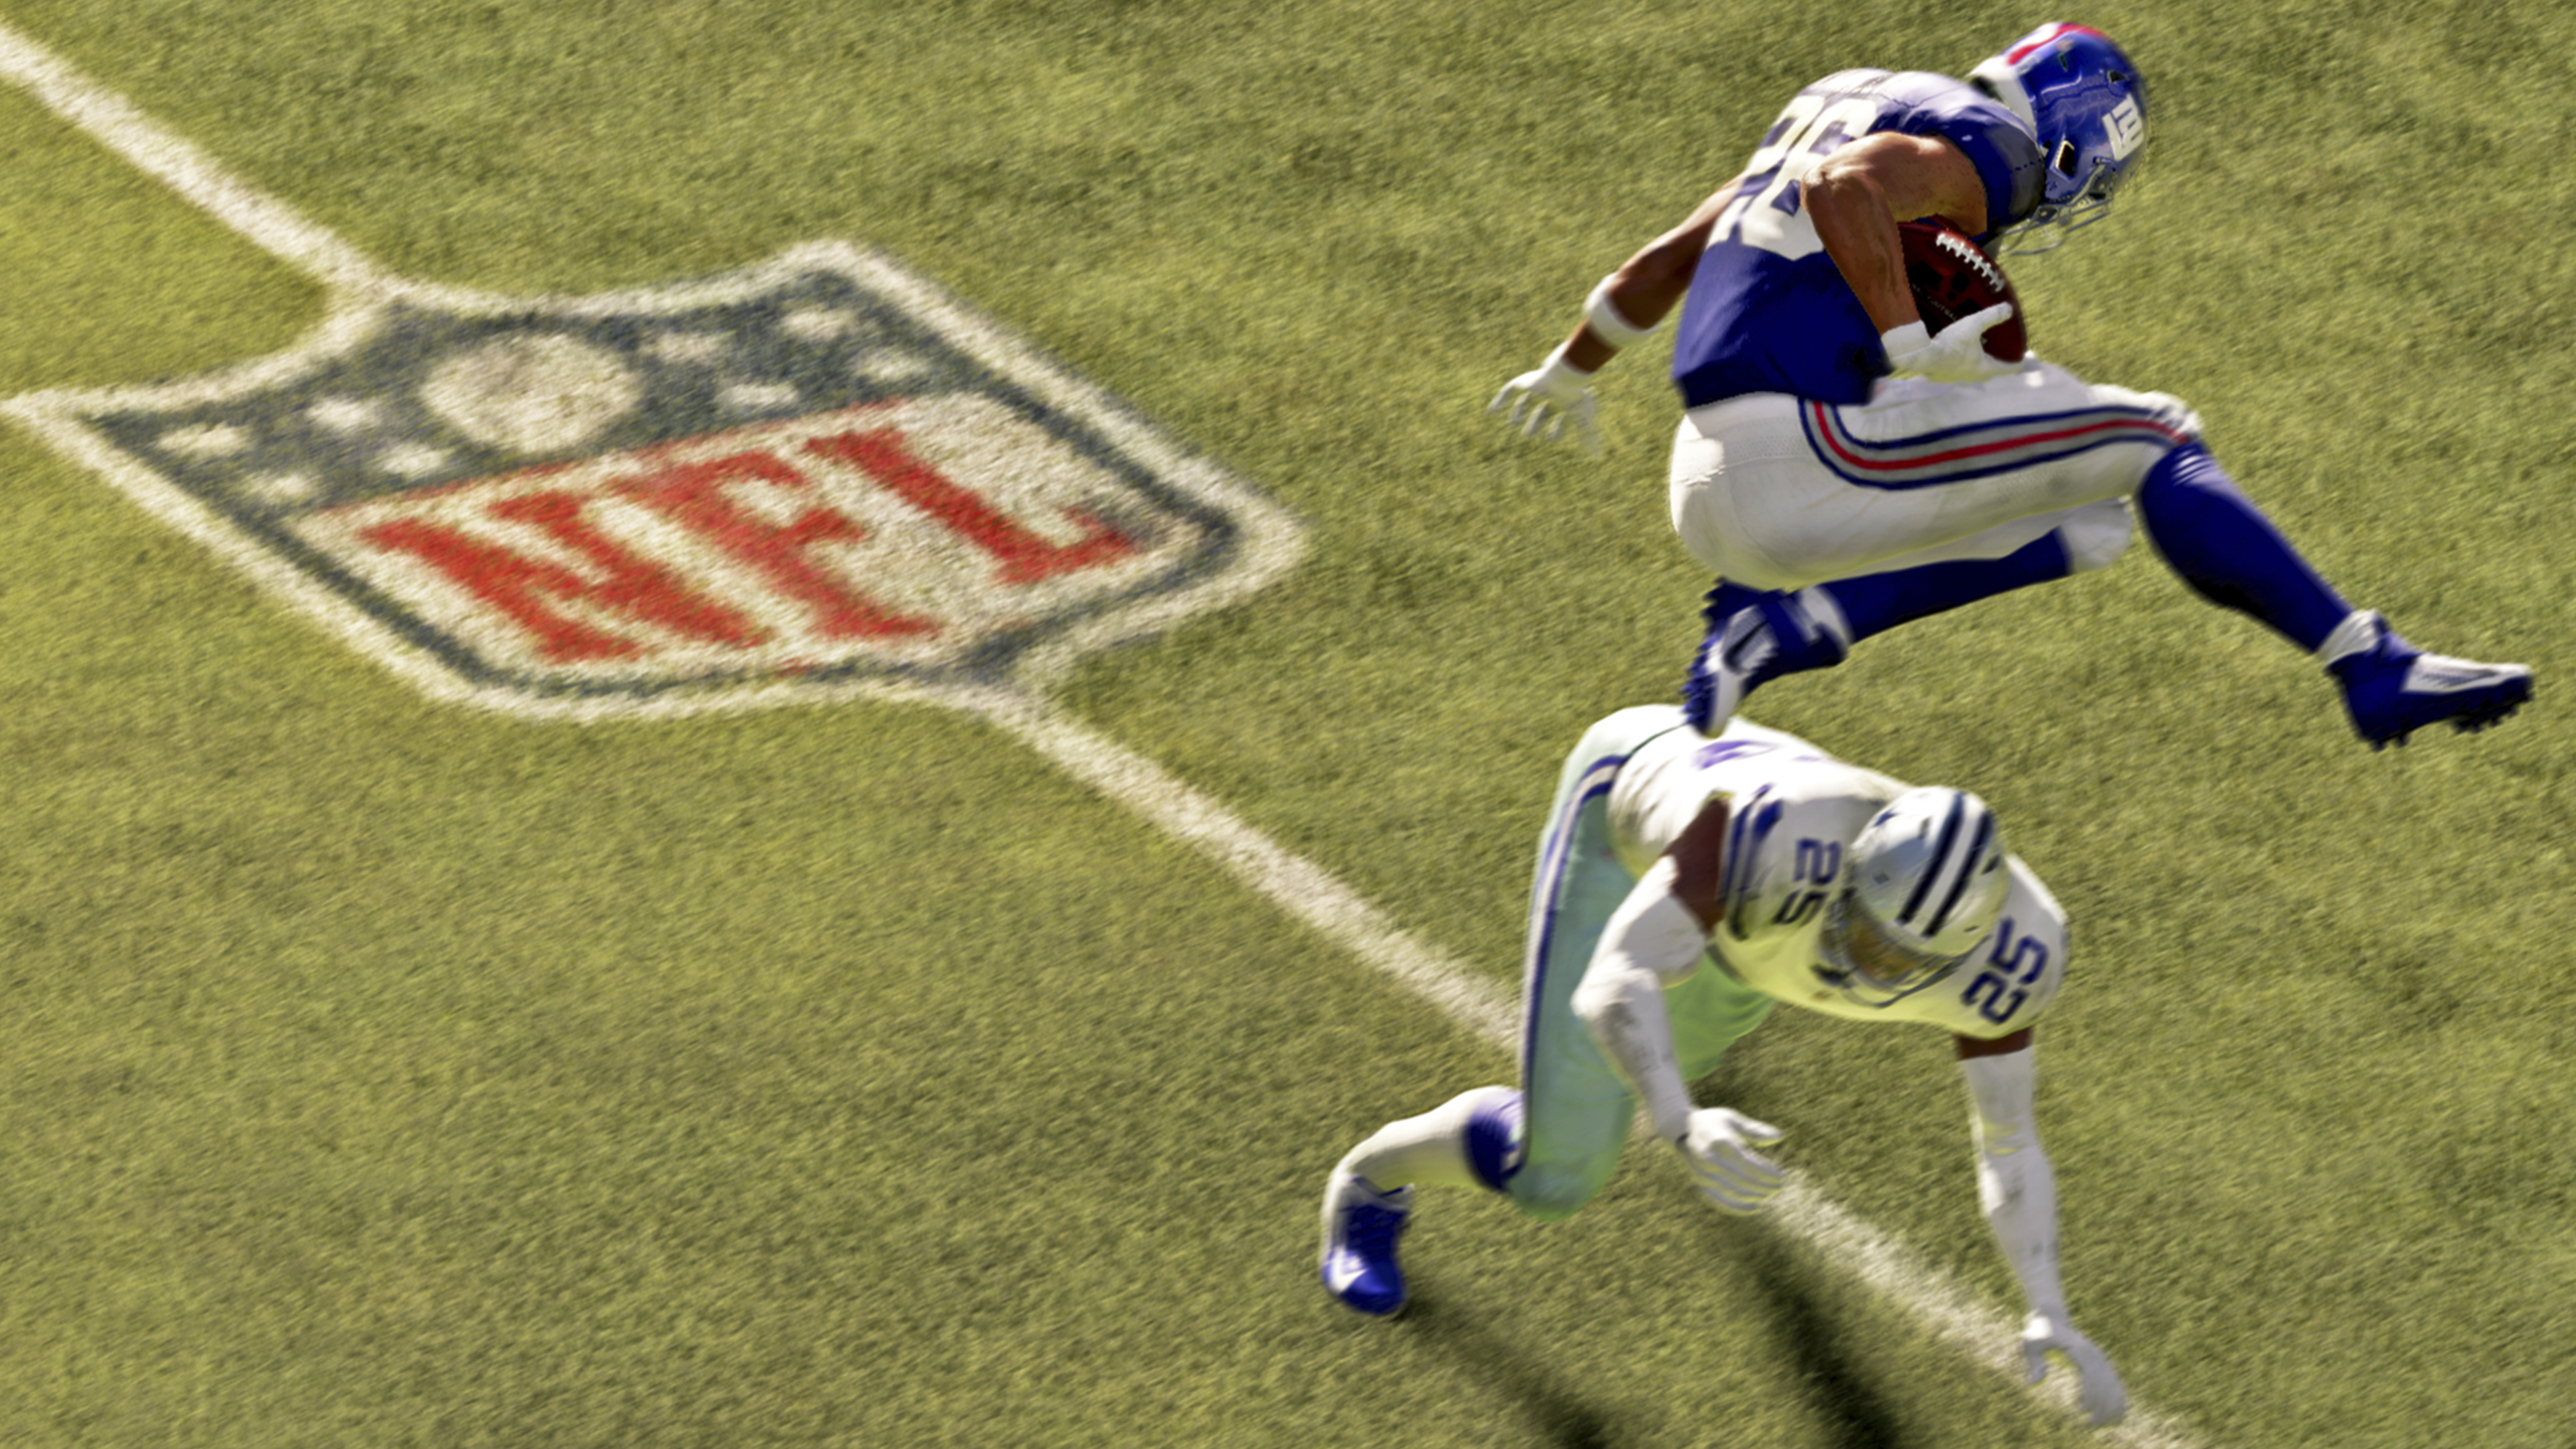 Madden NFL 21 gameplay screenshot